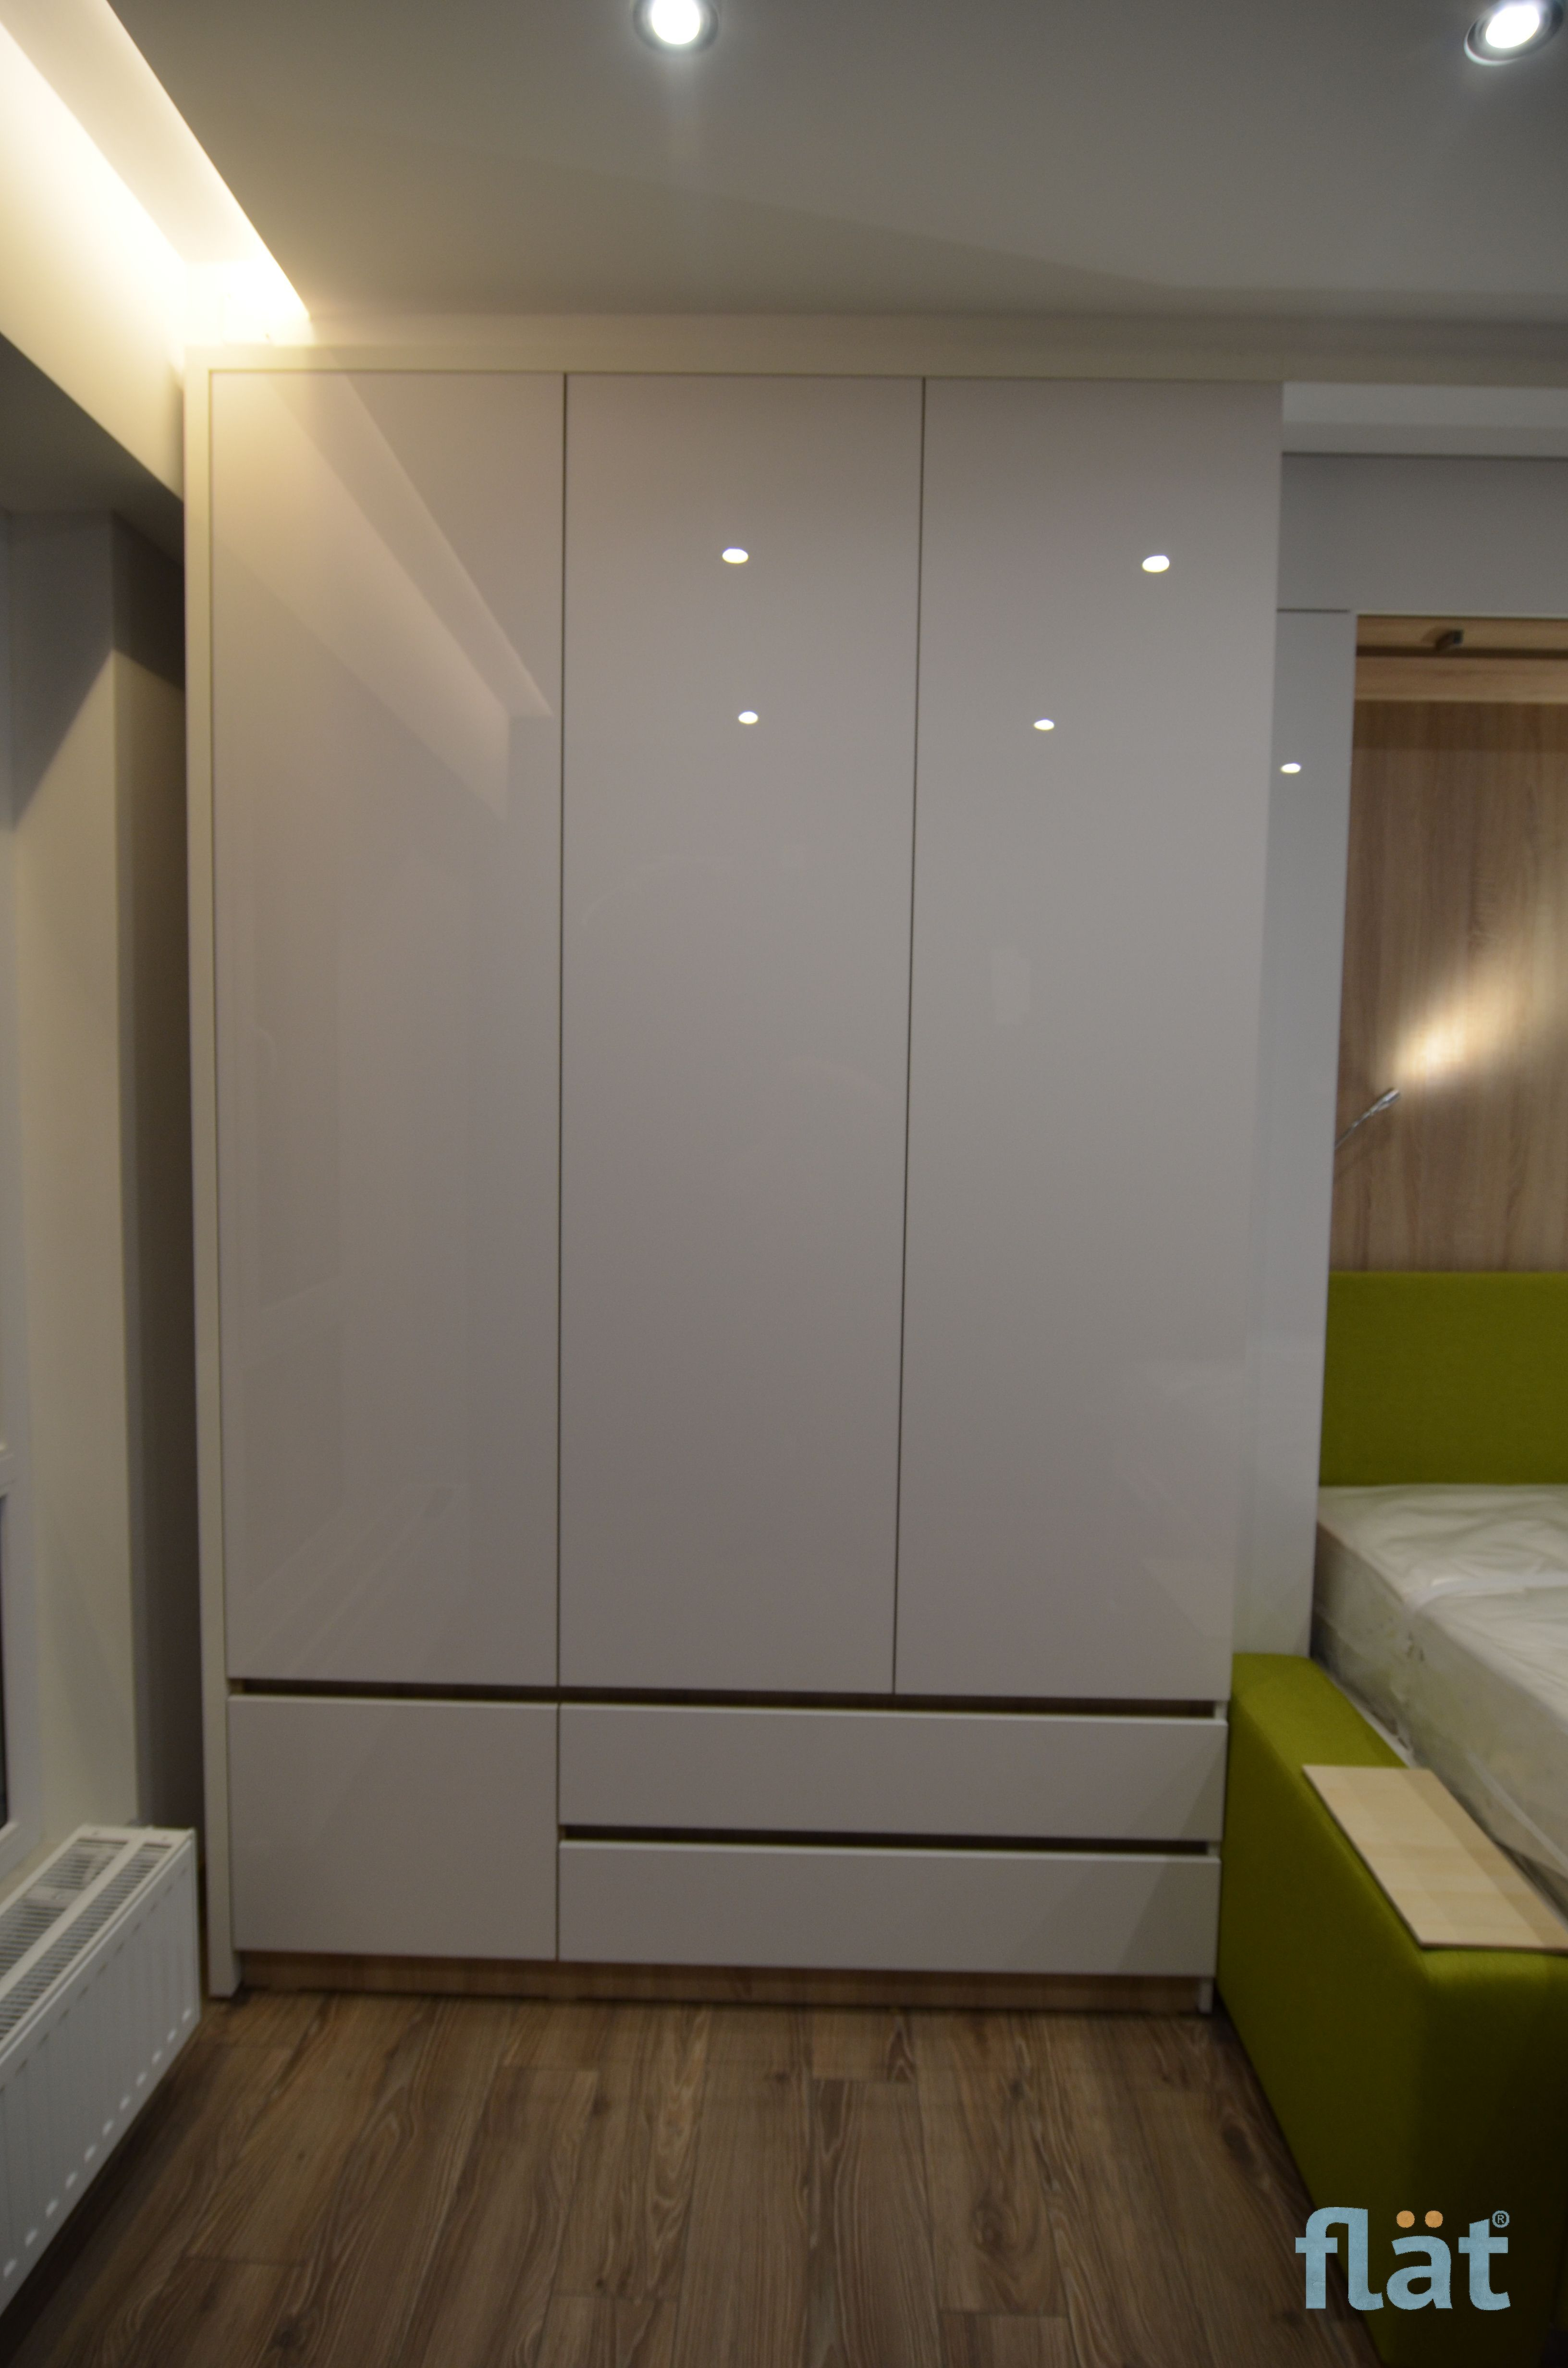 Big Wall Queen Size Wall Bed And Storage шкаф кровать стол